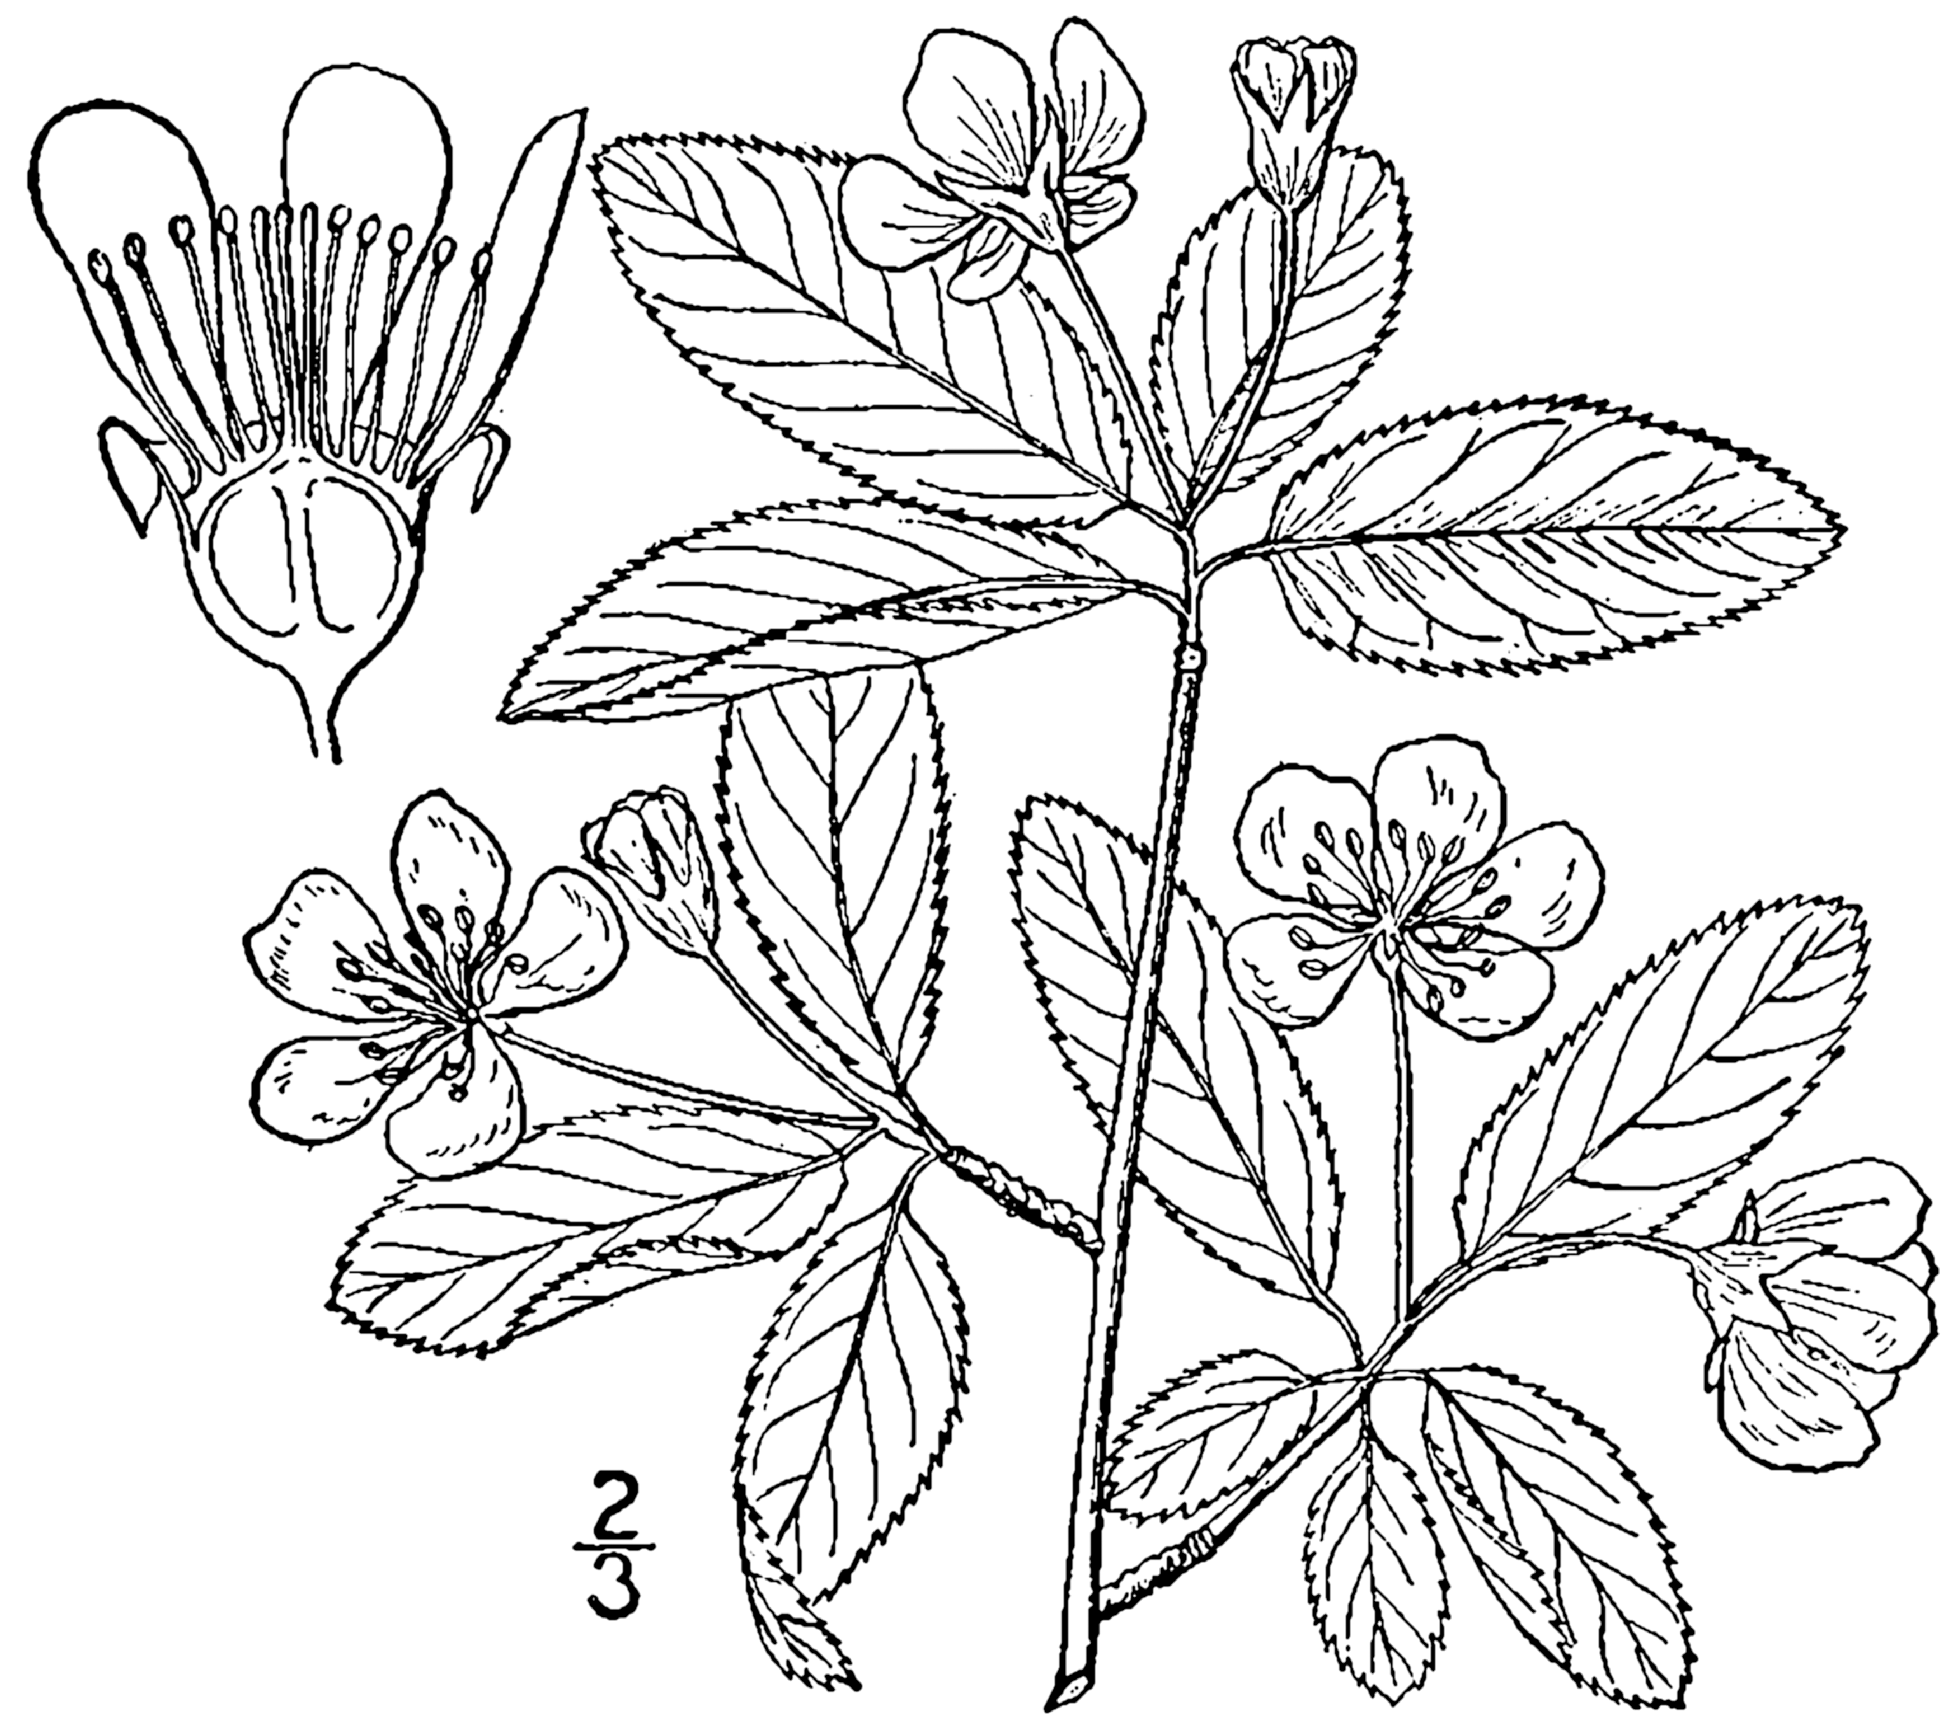 Amelanchier_bartramiana_drawing